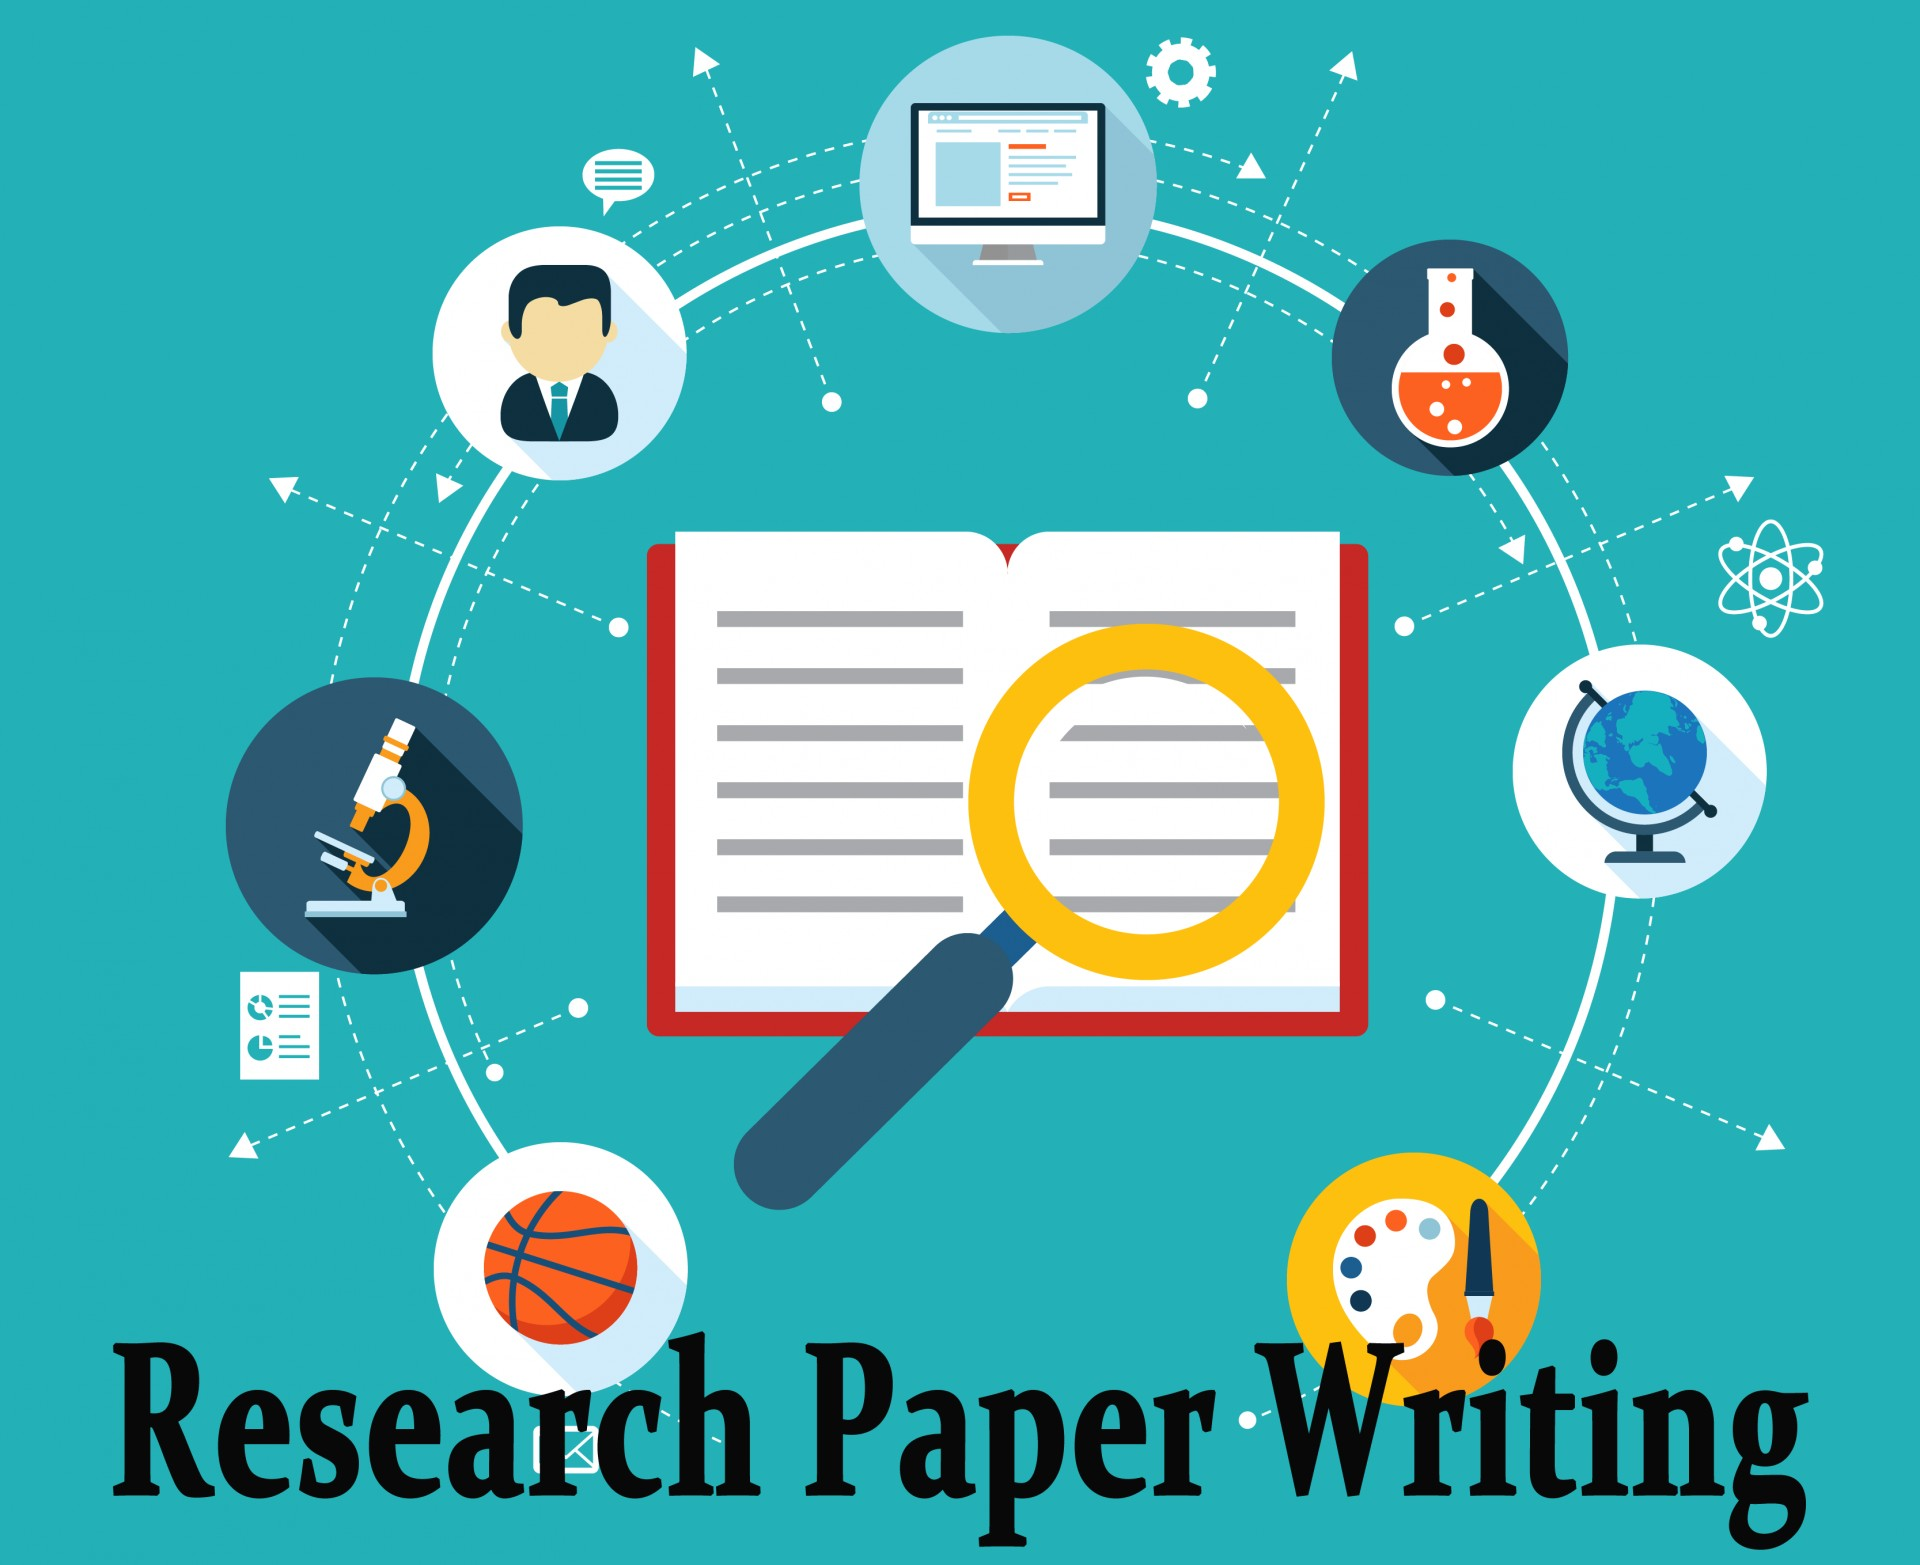 005 Research Paper Get Help With Stunning Writing A 1920